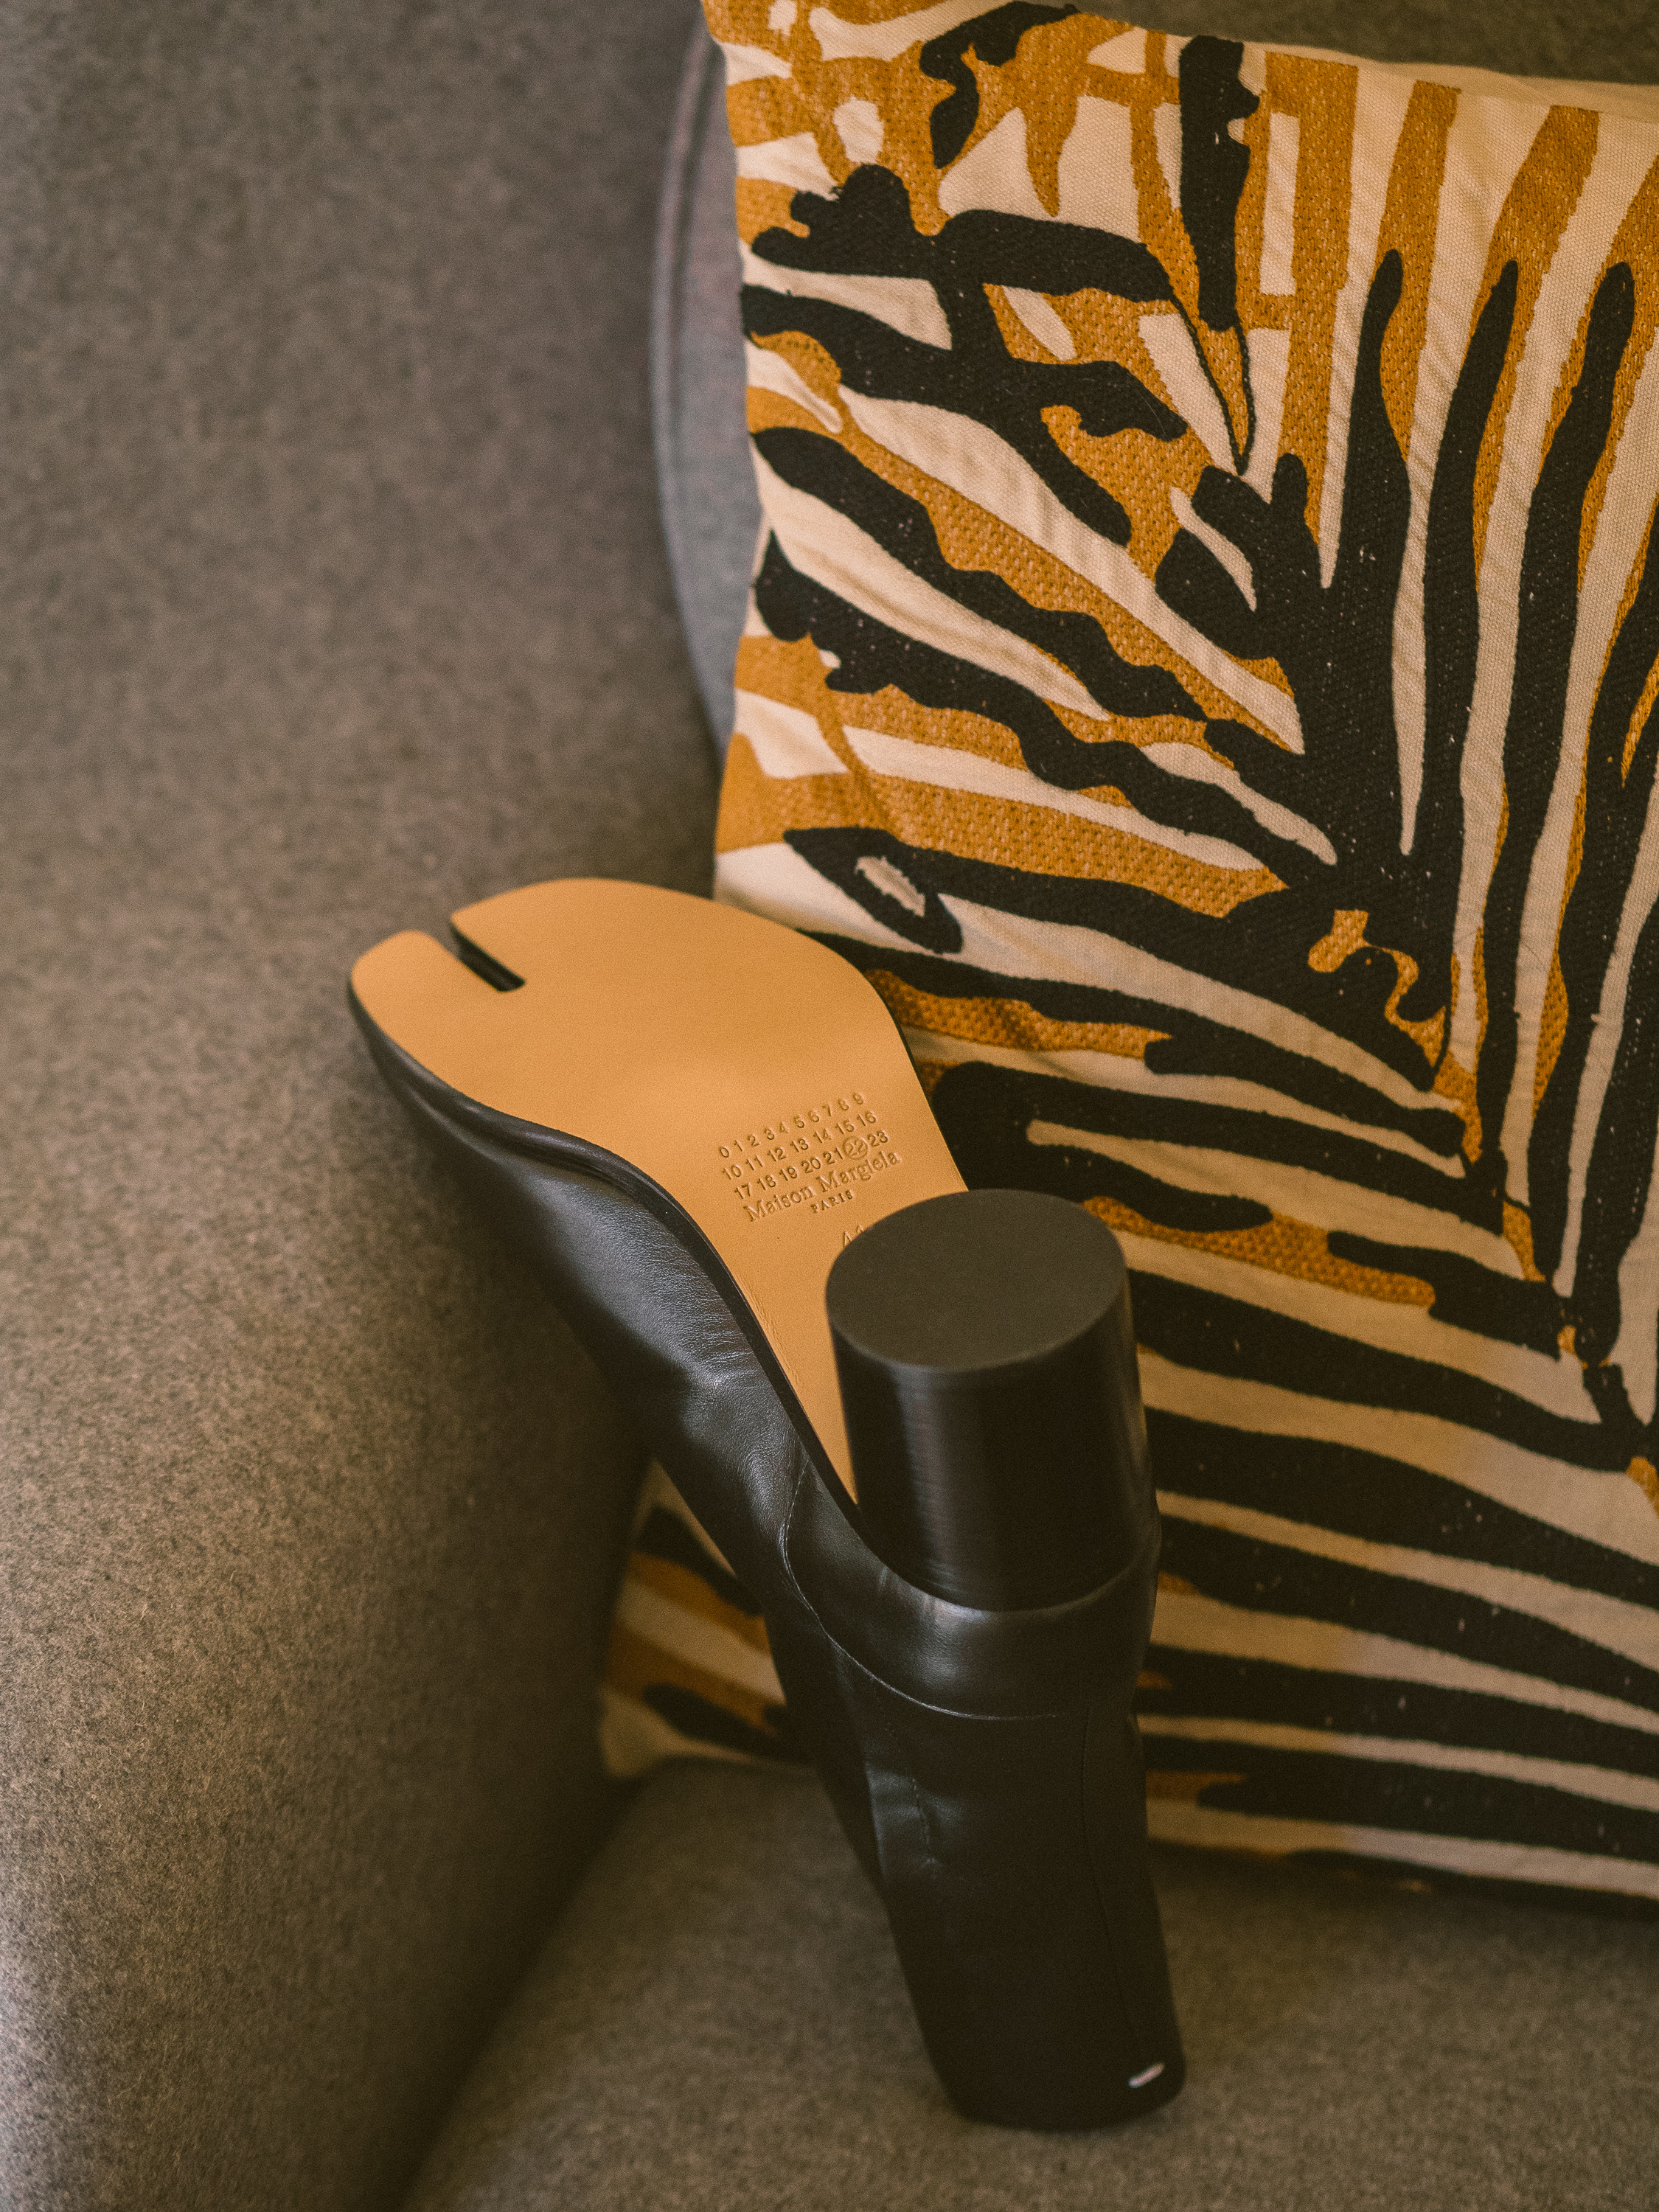 Wearable Art: Margiela Tabi Boots - Own a piece of sartorial history